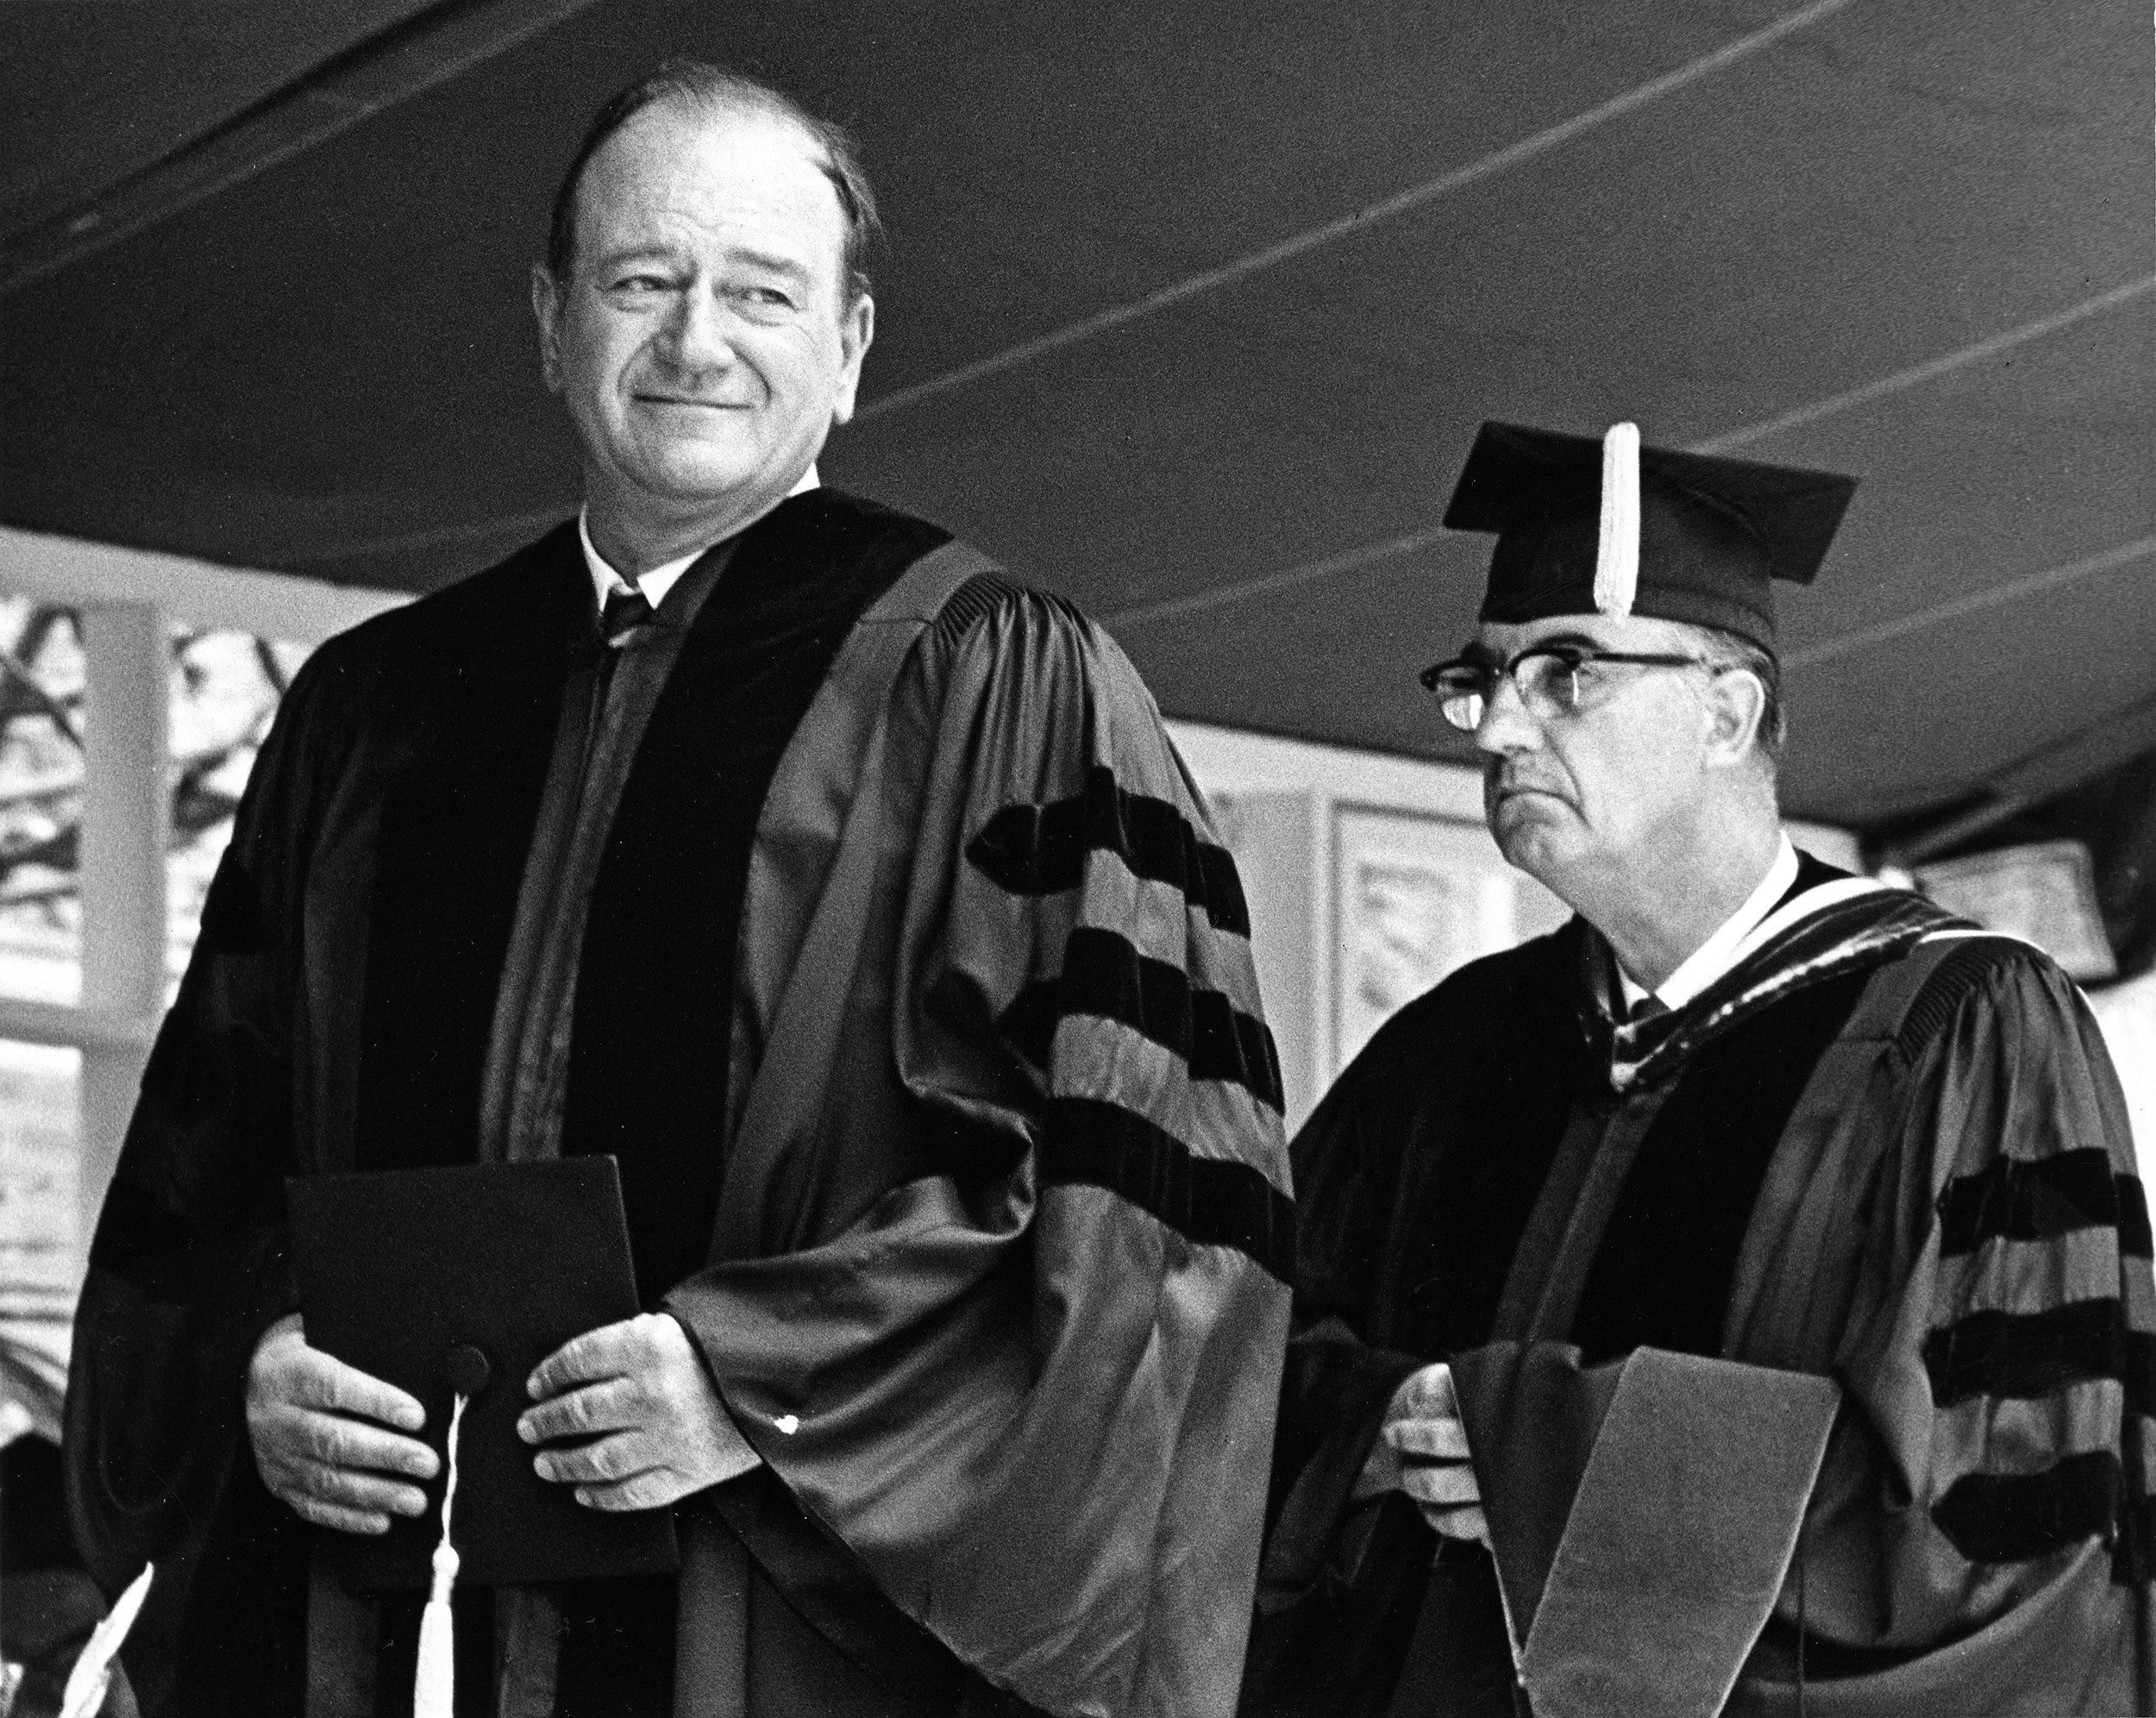 John Wayne (left) receiving his honorary doctorate degree from USC in 1968.